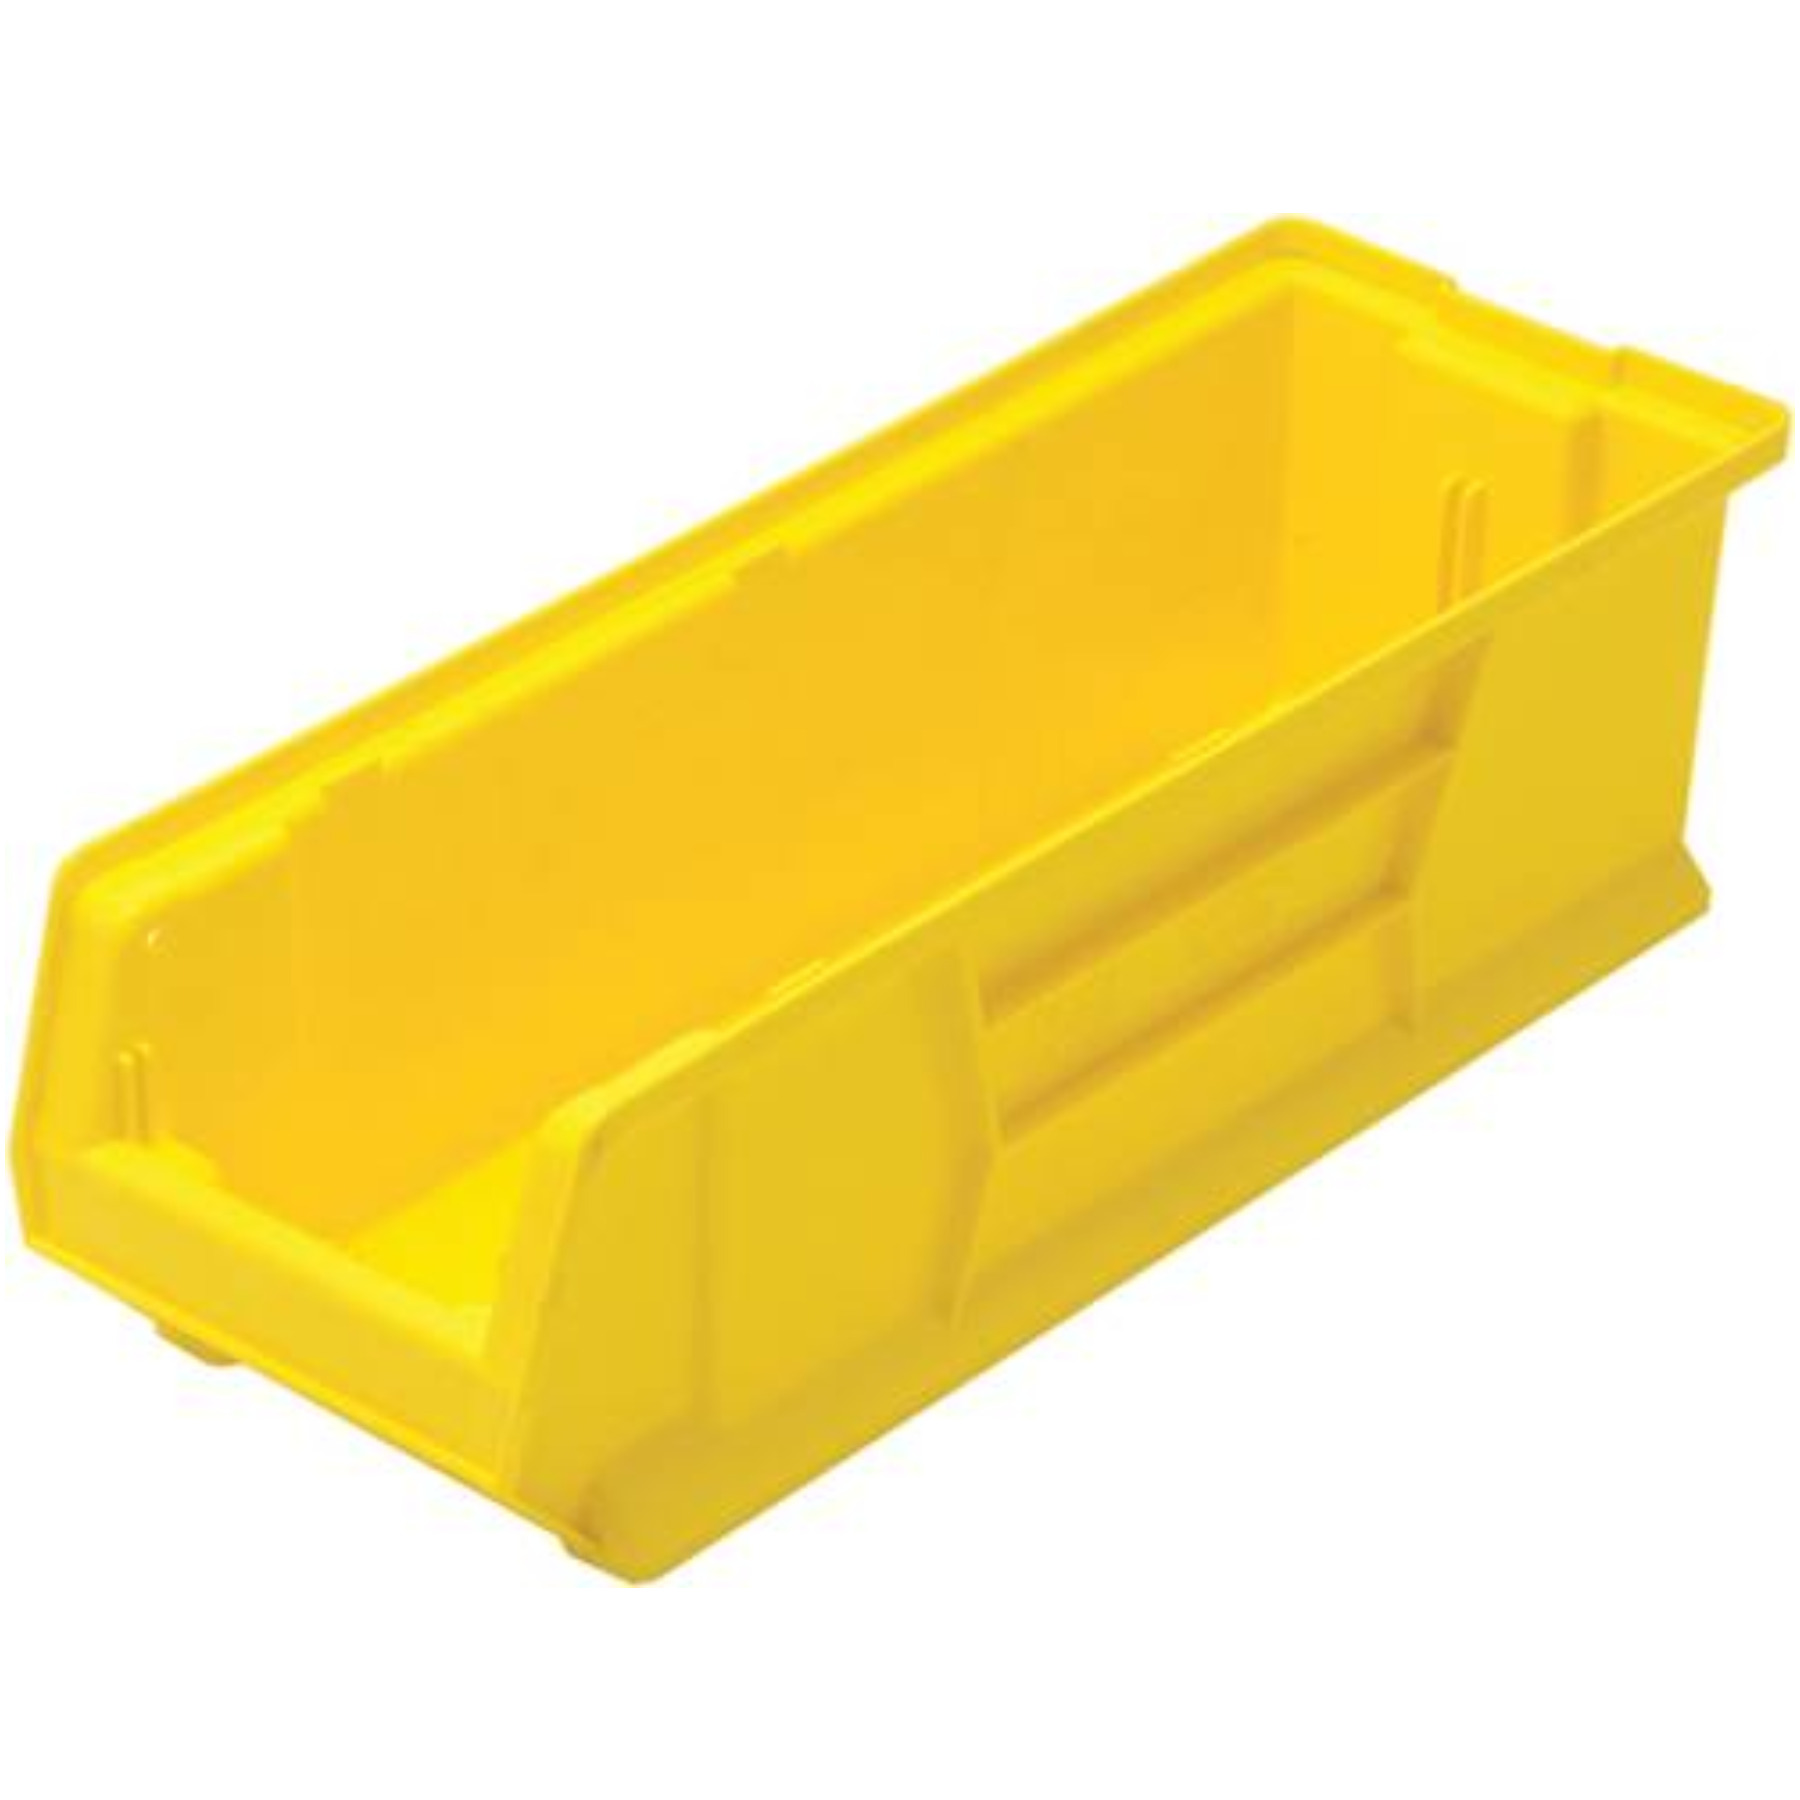 QUANTUM STORAGE SYSTEMS HULK CONTAINER, 23-7/8 IN. X 8-1/4 IN. X 7 IN., YELLOW